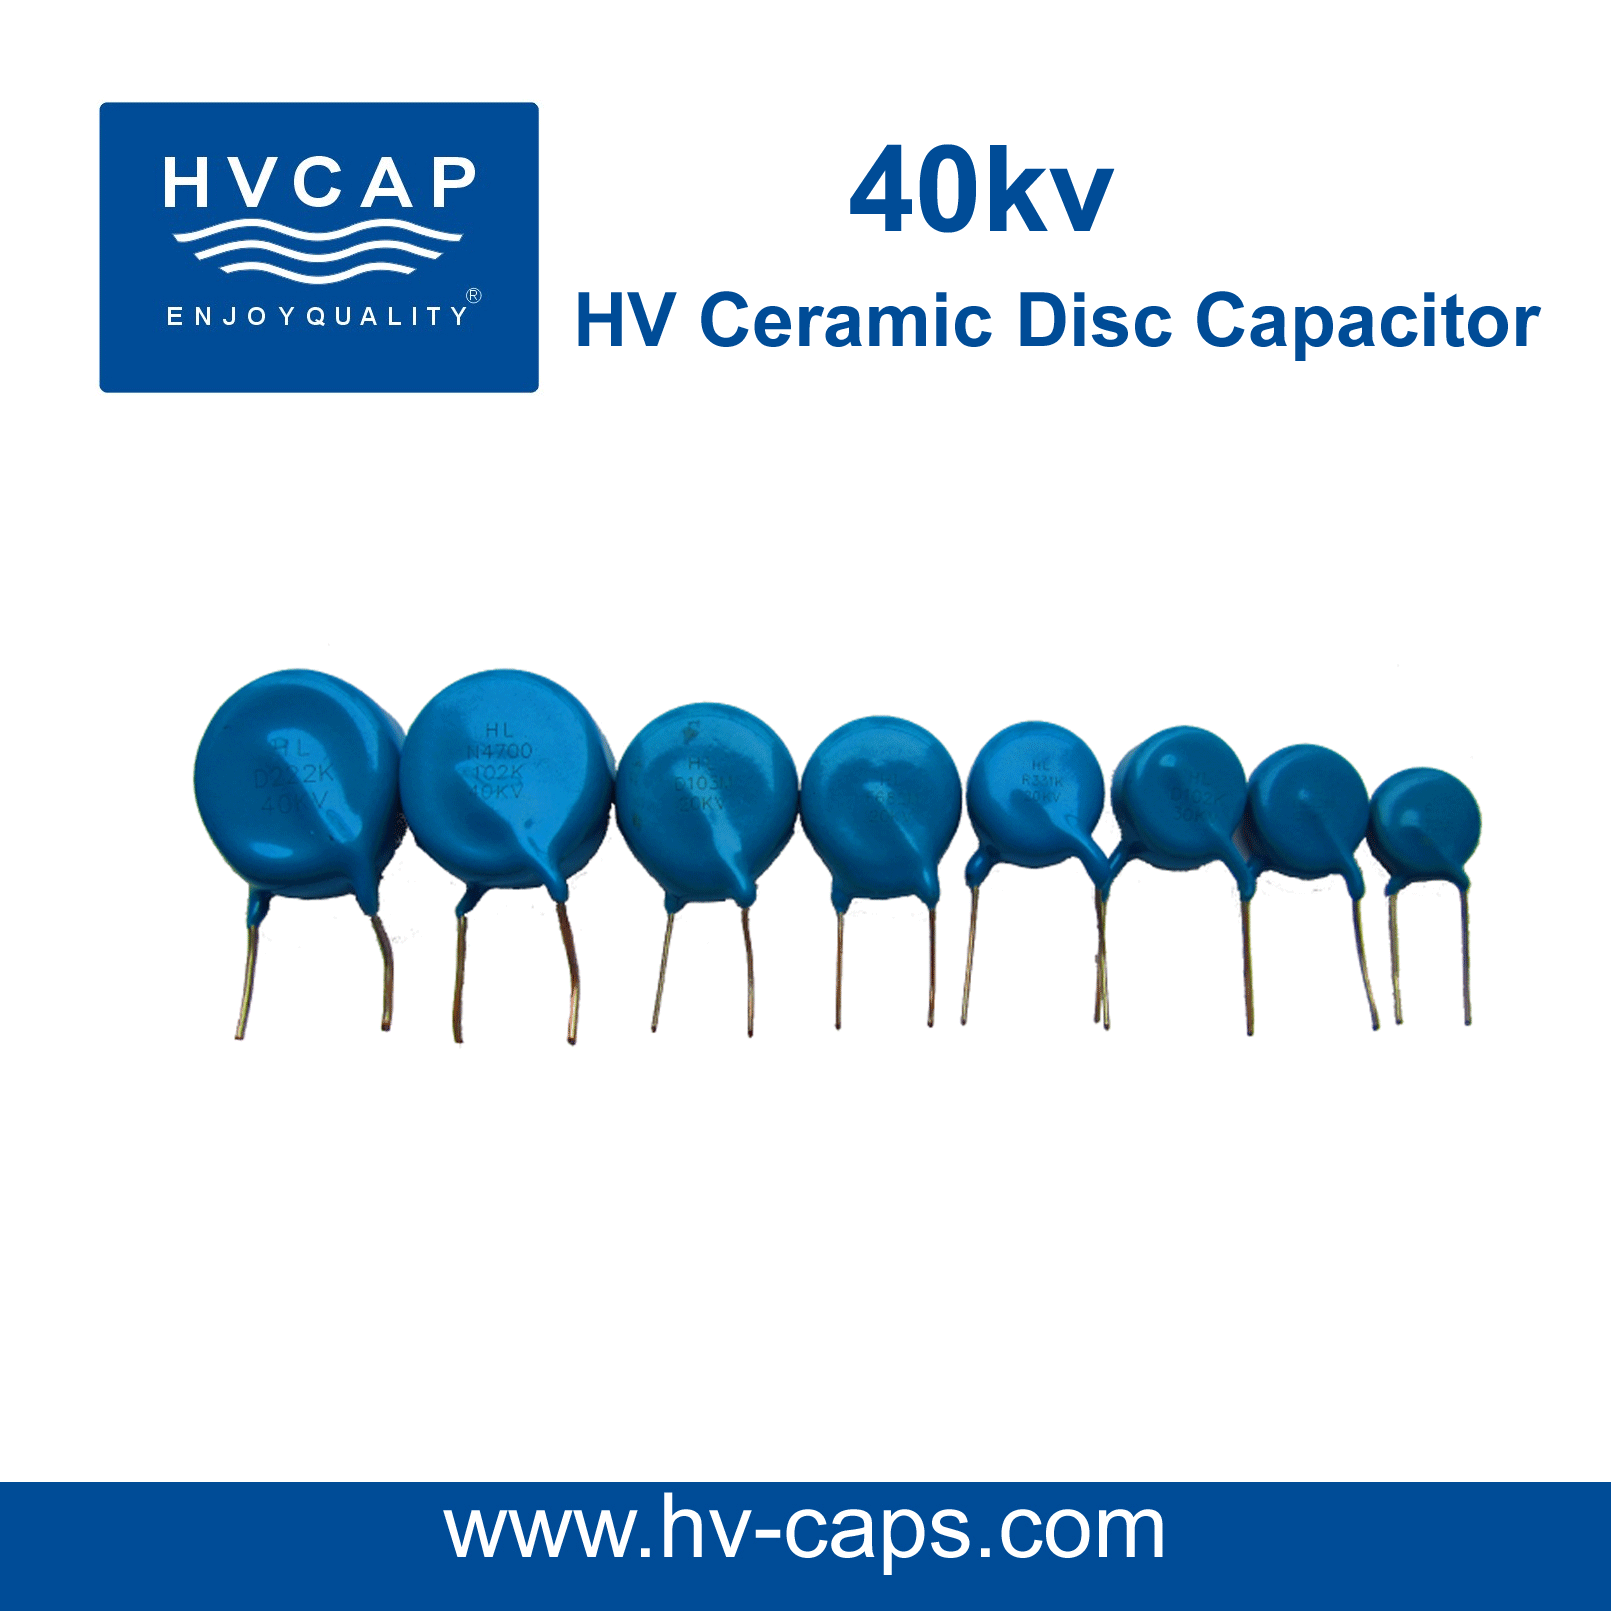 High Voltage Ceramic Capacitor 40kv detail specification.